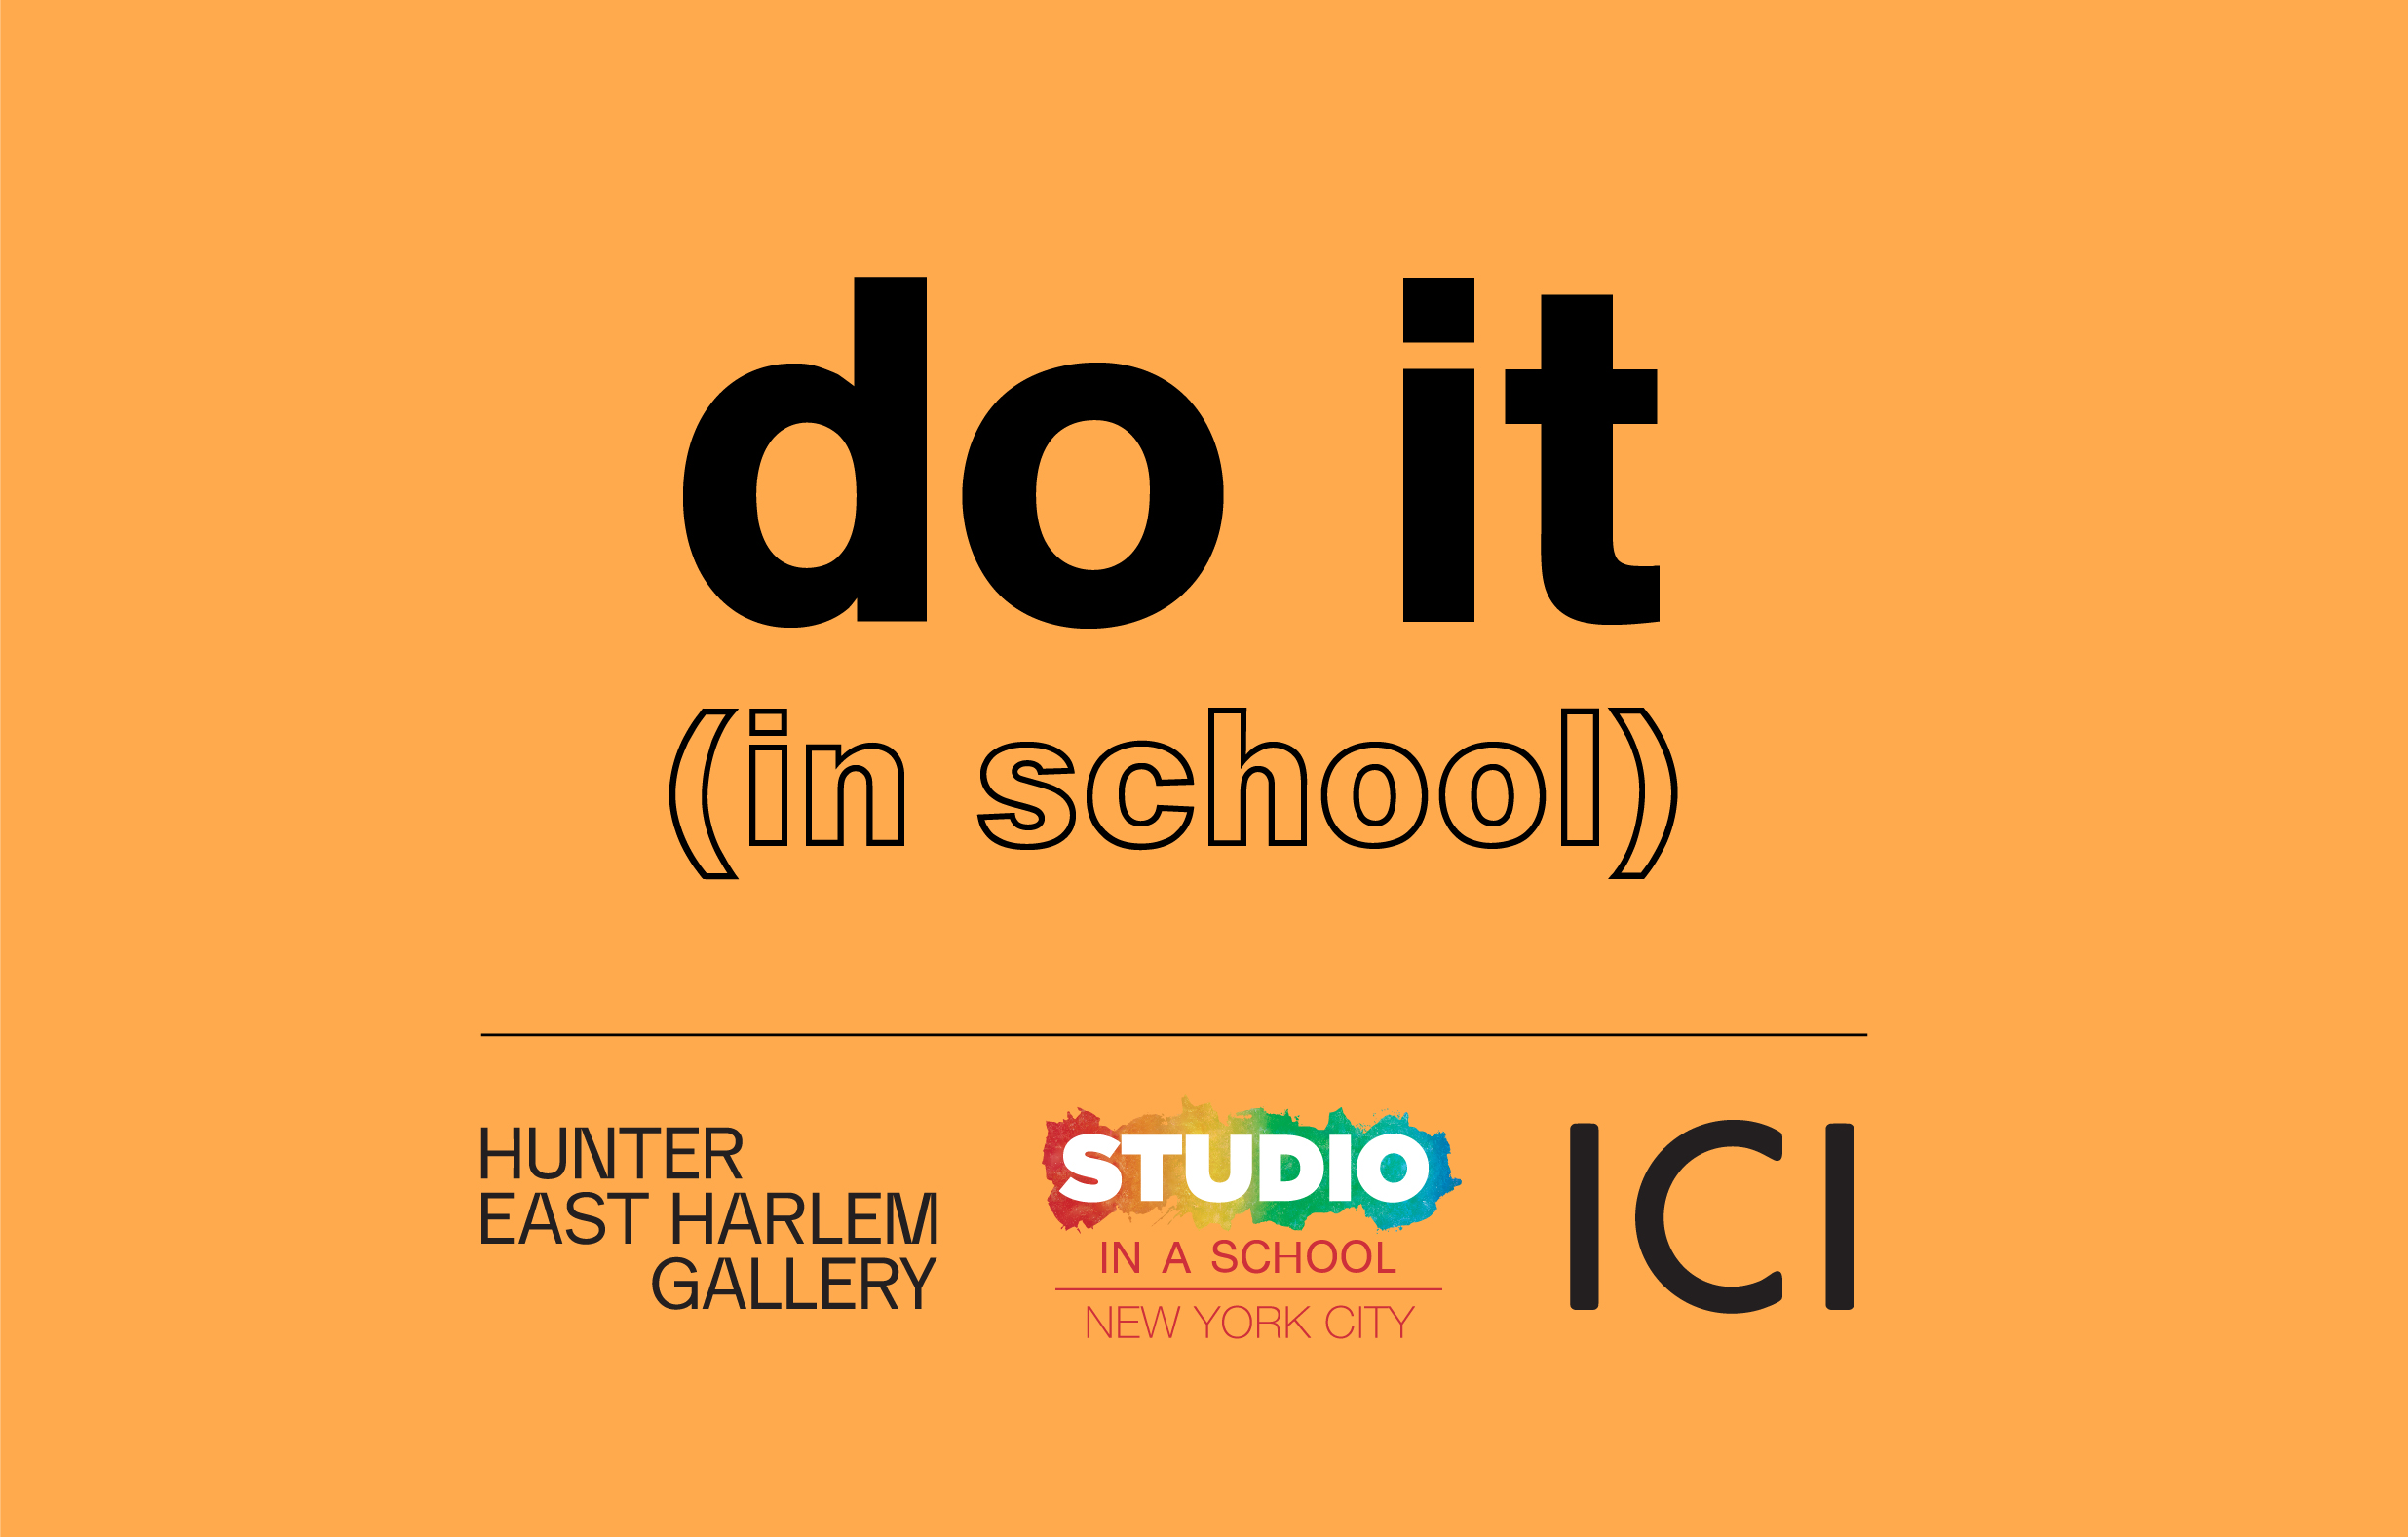 do-it_inschool_art-promo-logos-04.jpg